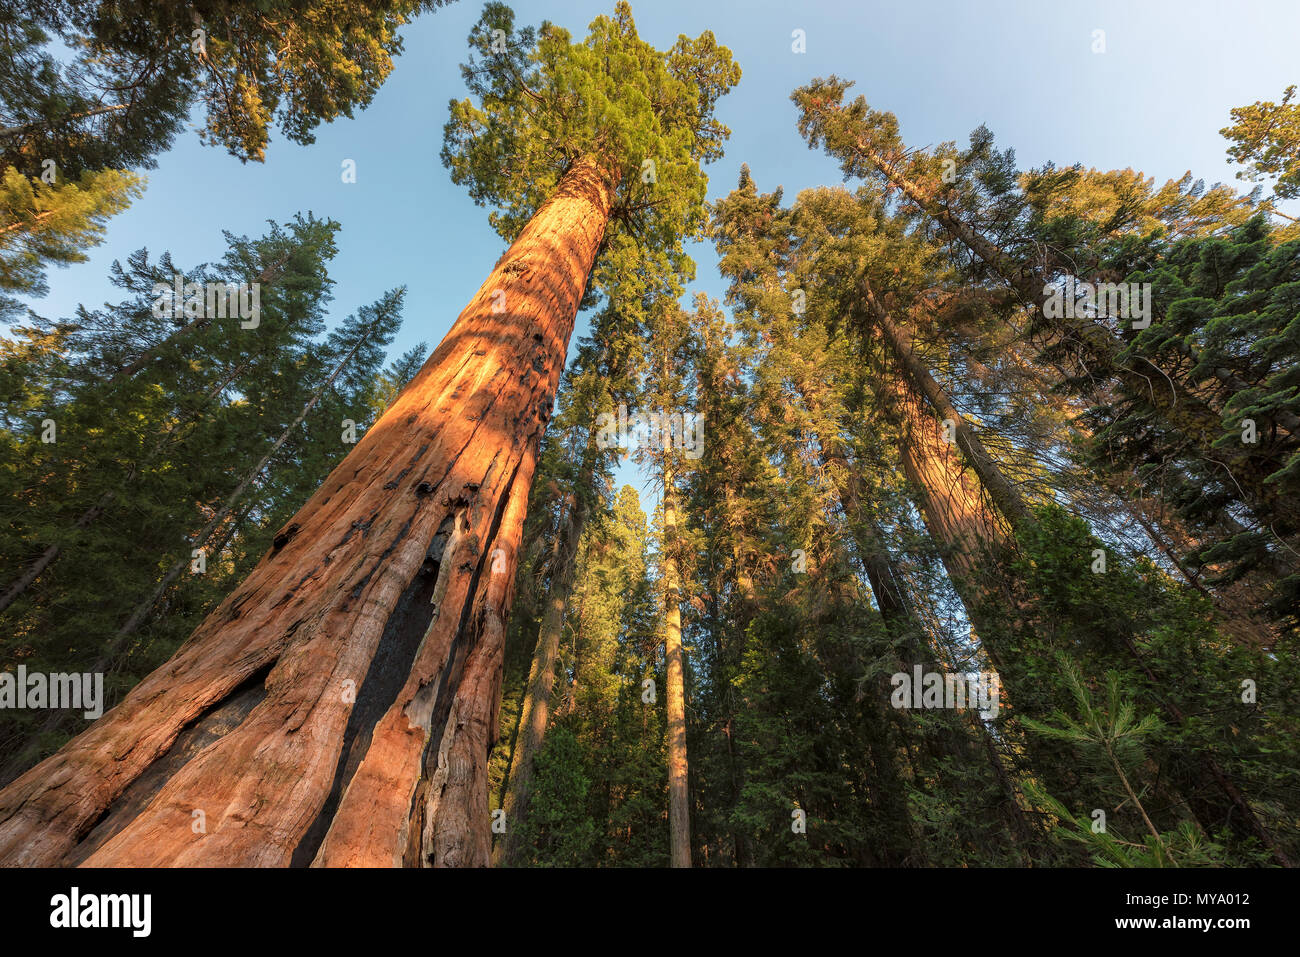 Giant Sequoia Trees - Stock Image